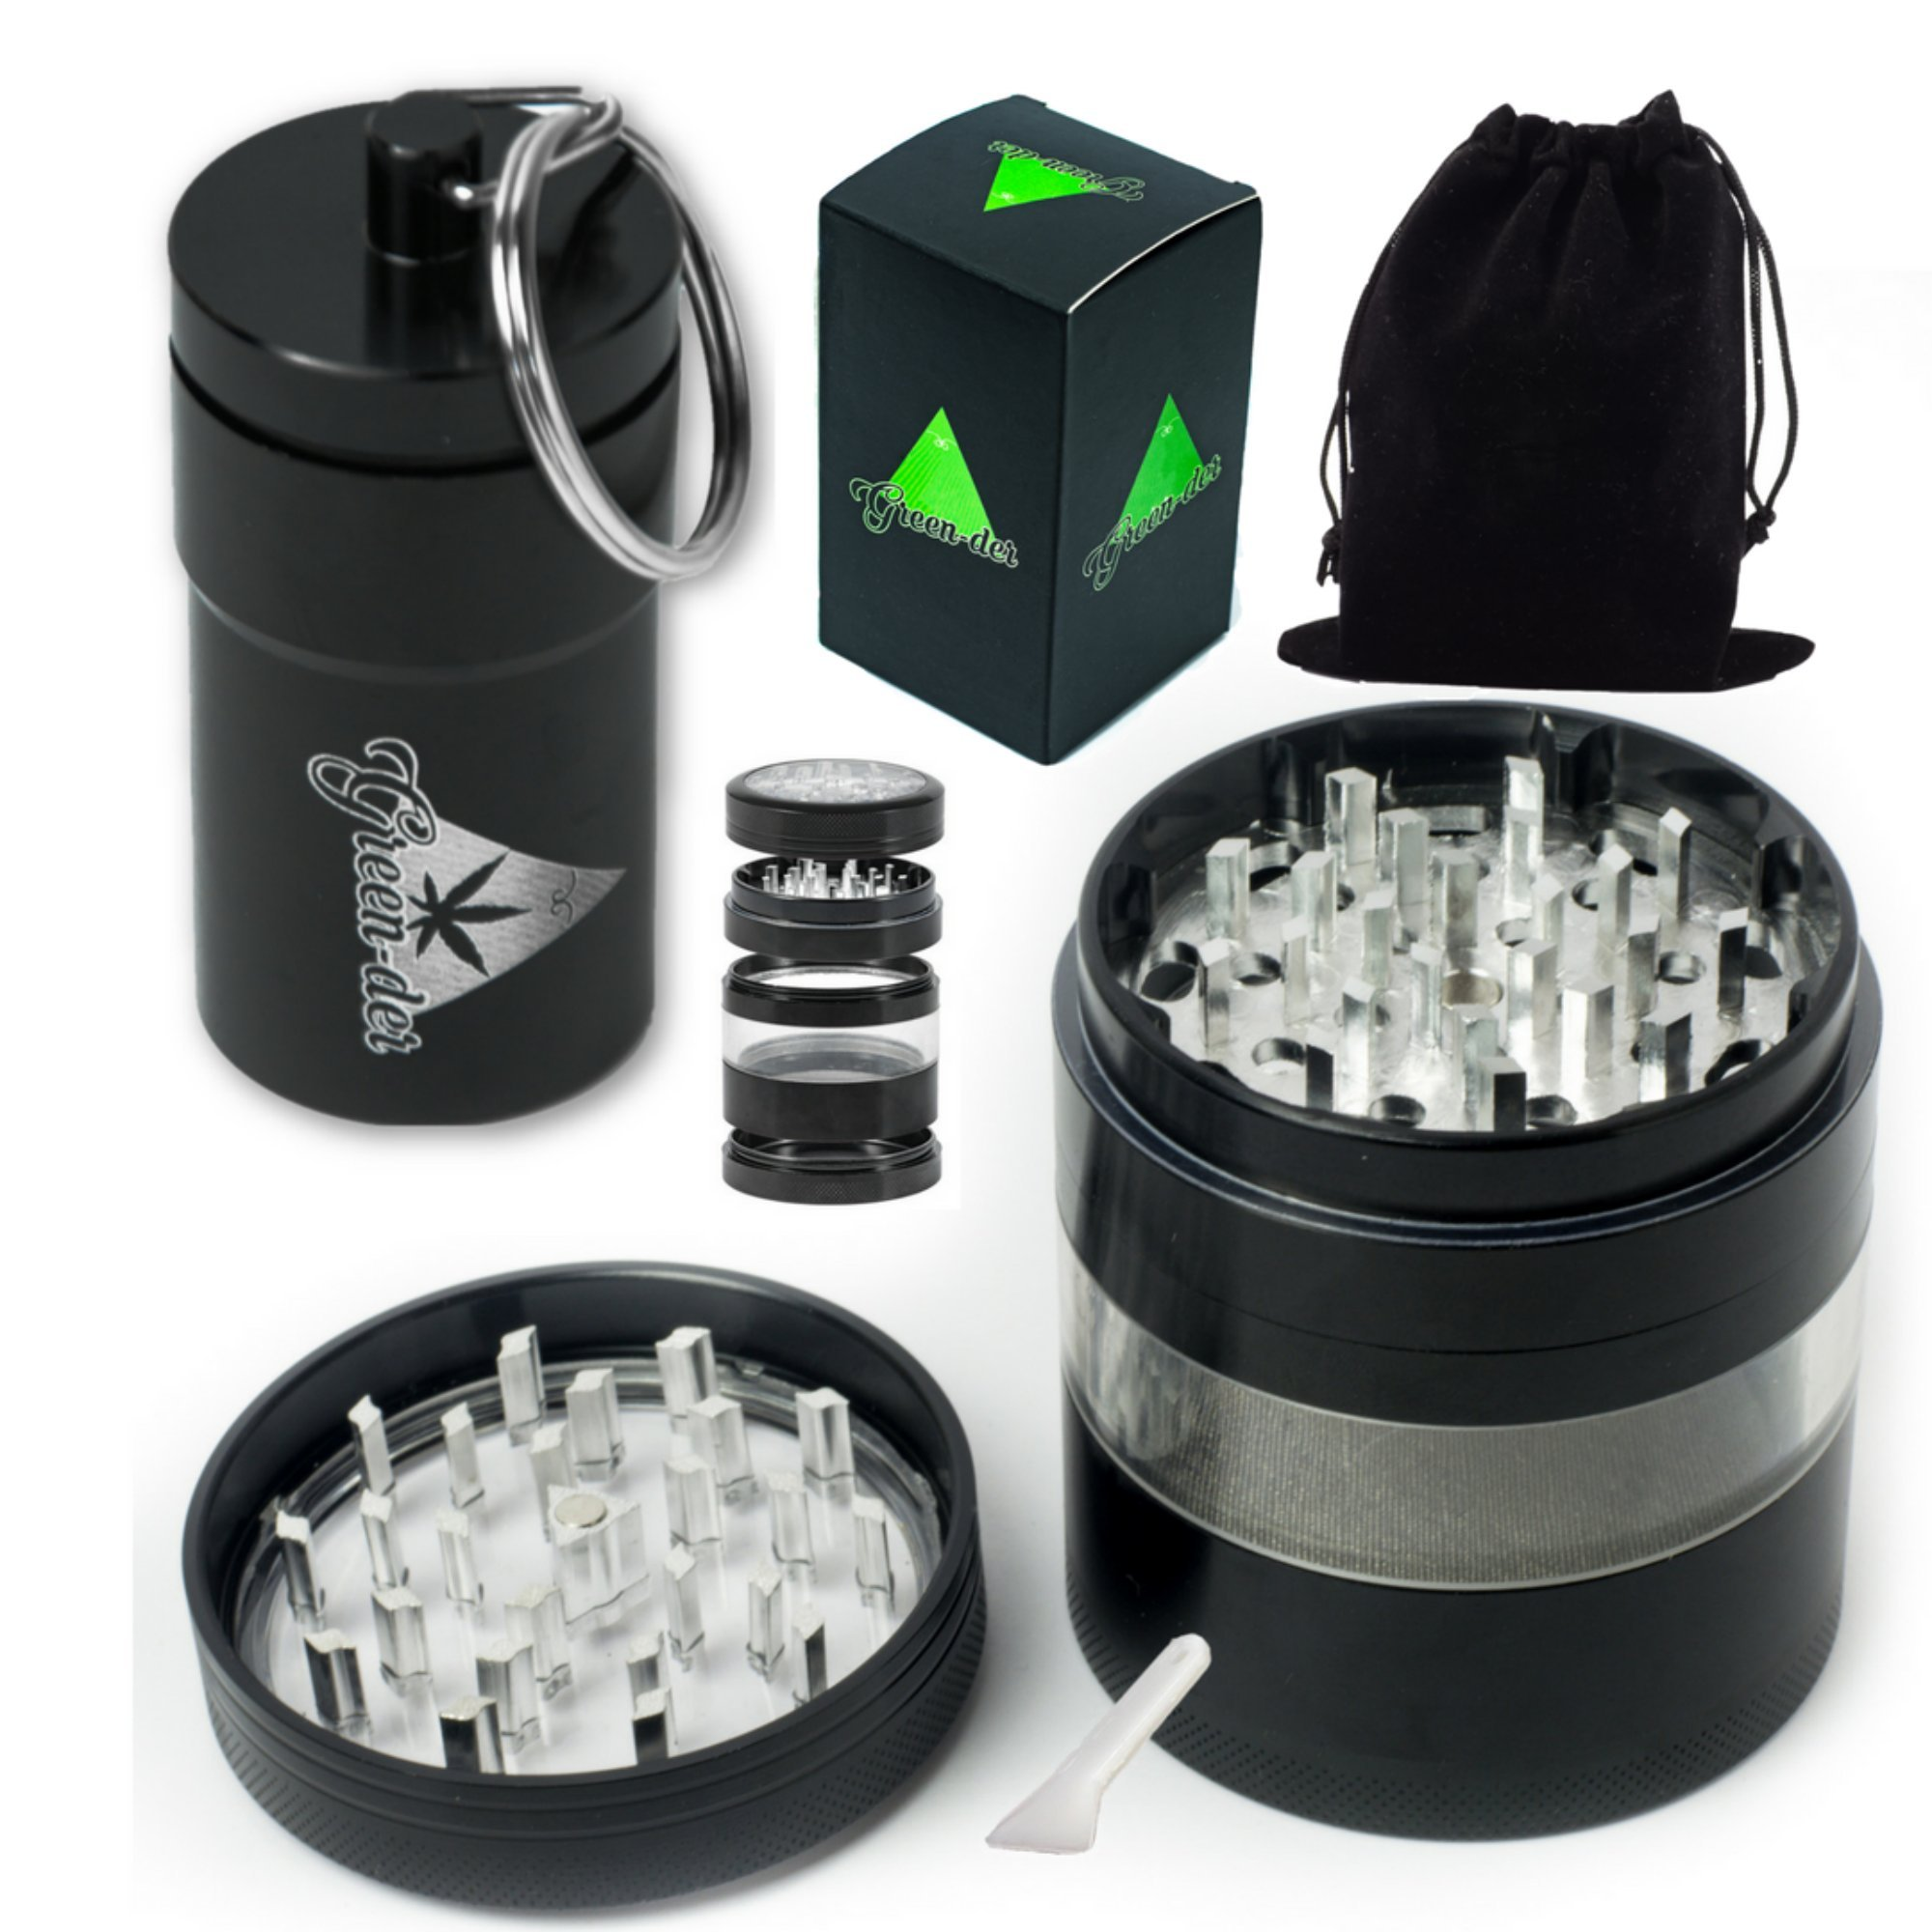 Fine Herb Grinder Set including Large, four pieces, 3.25 inches Tall, Weed Grinder with Pollen/Keef Catcher and Airtight Stash Container, Black by Green-Der